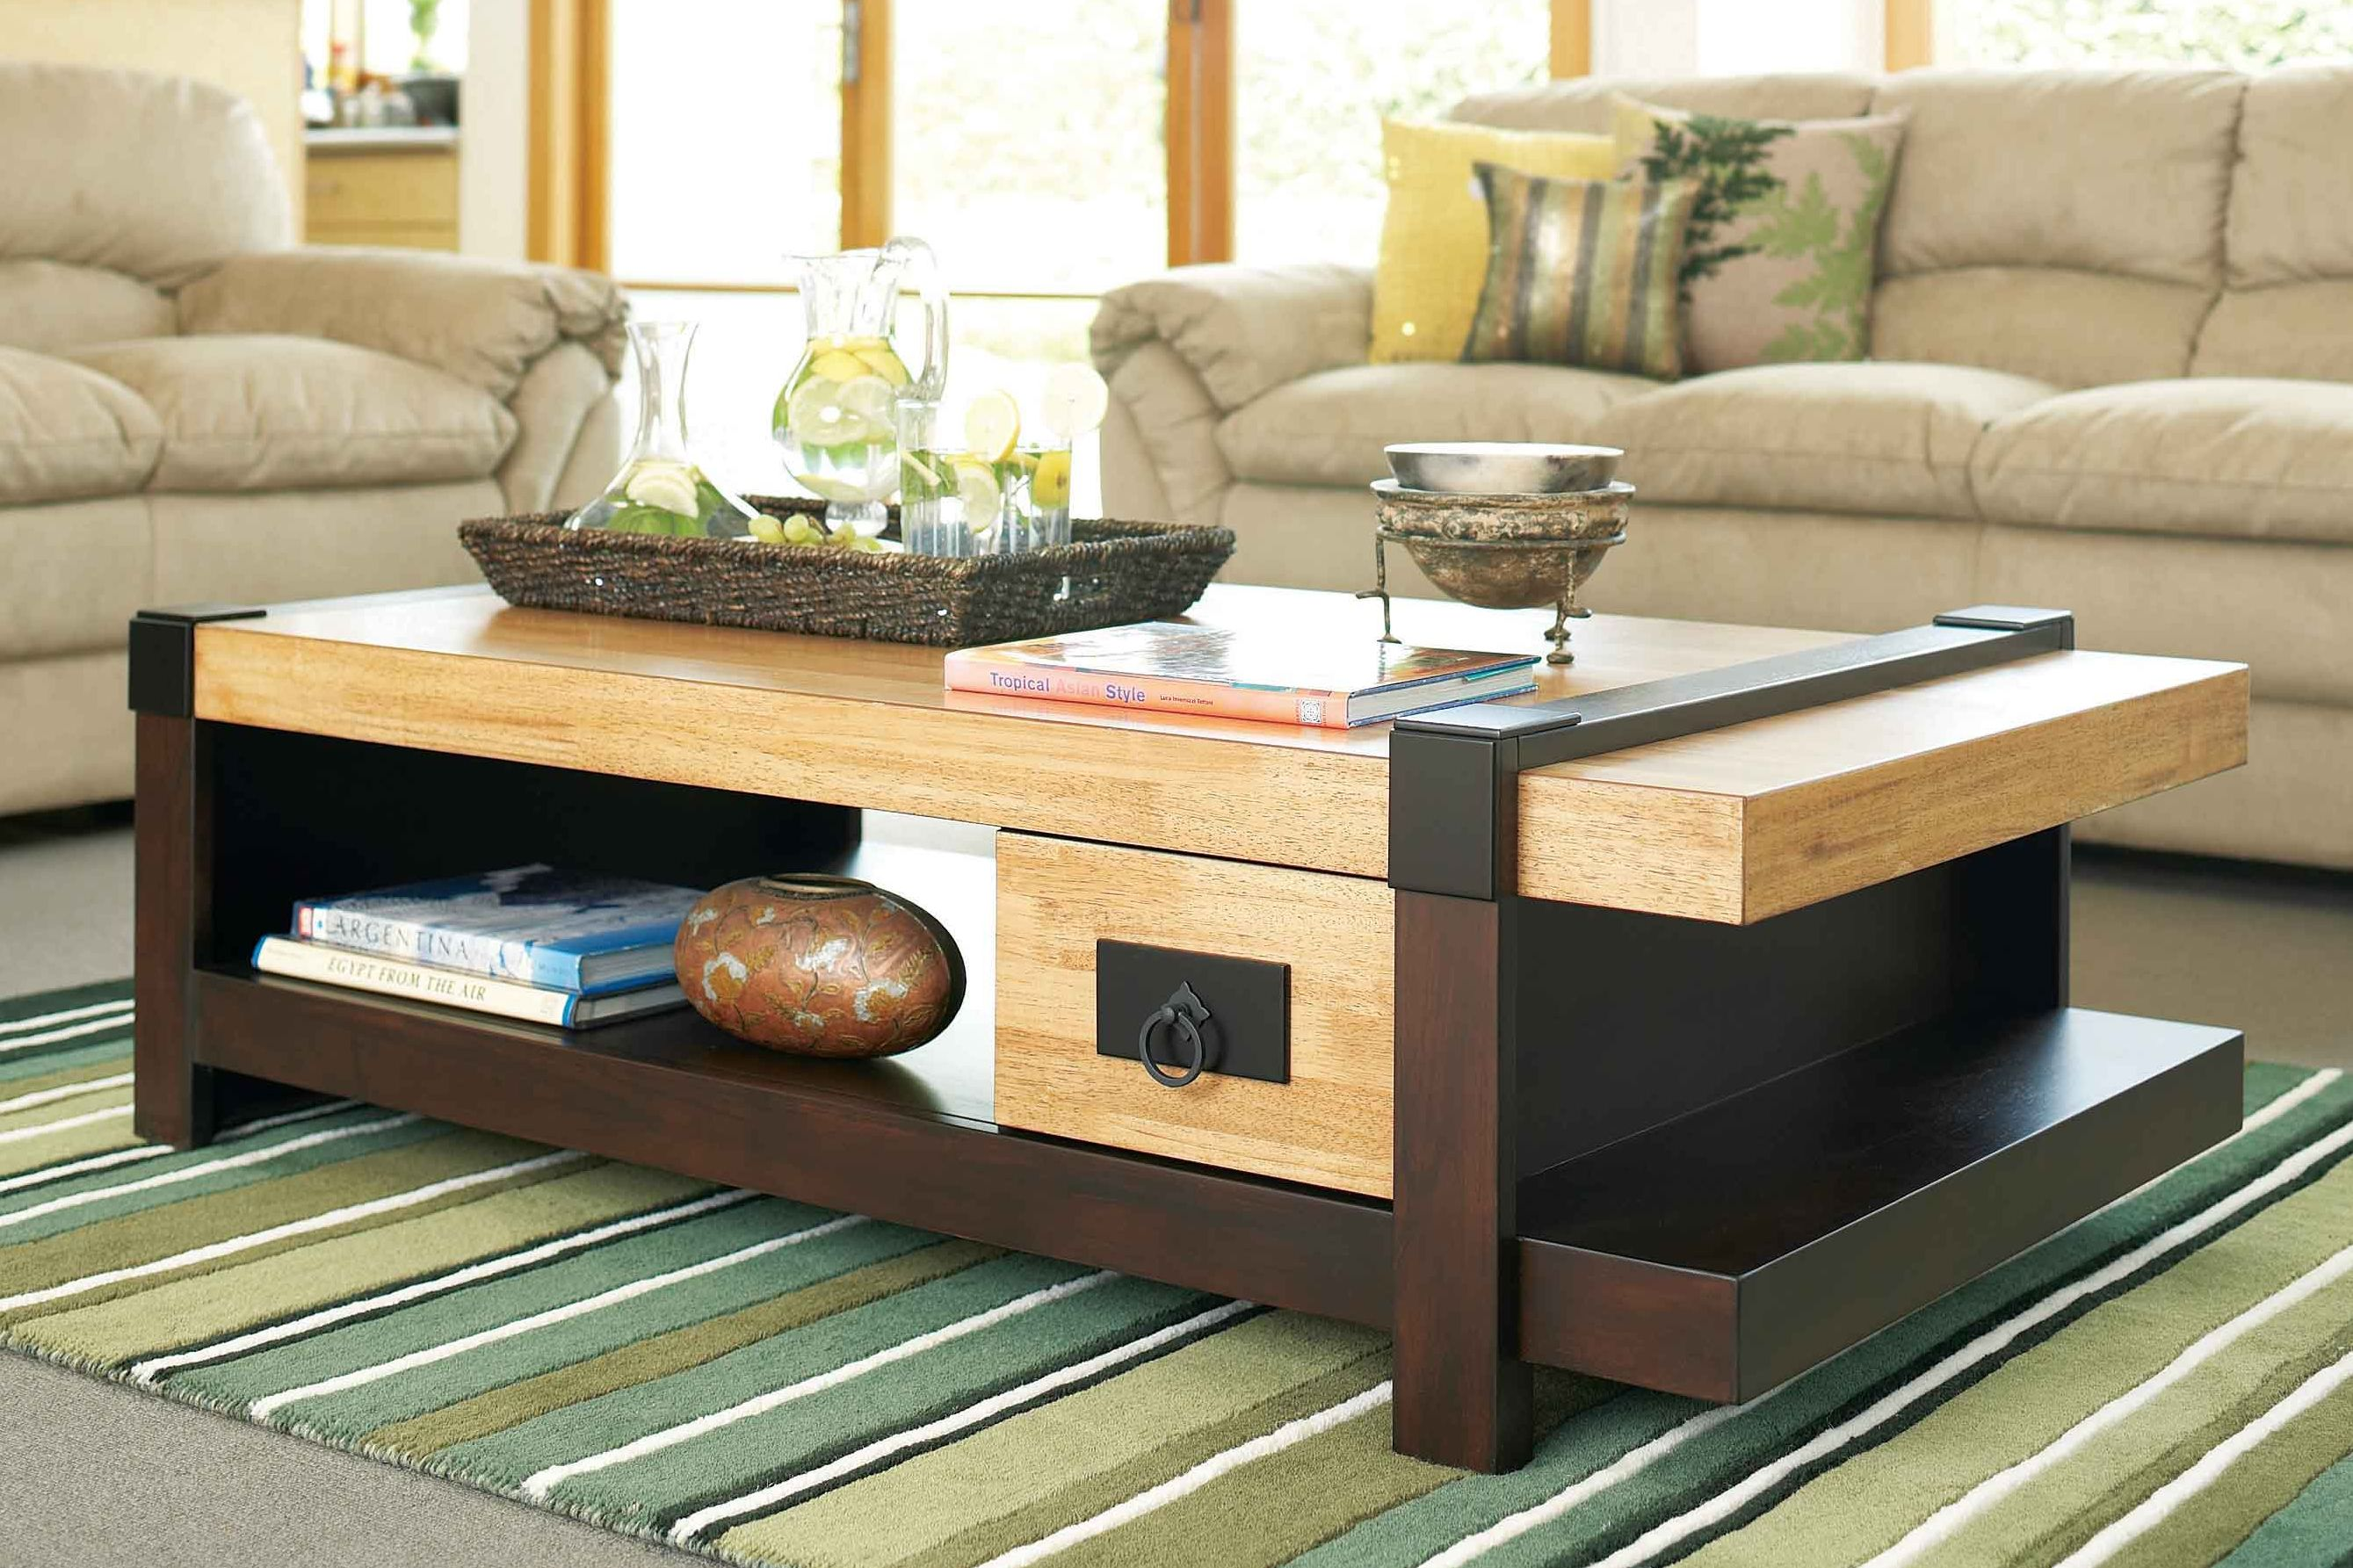 The York Coffee Table By Insato From Harvey Norman New